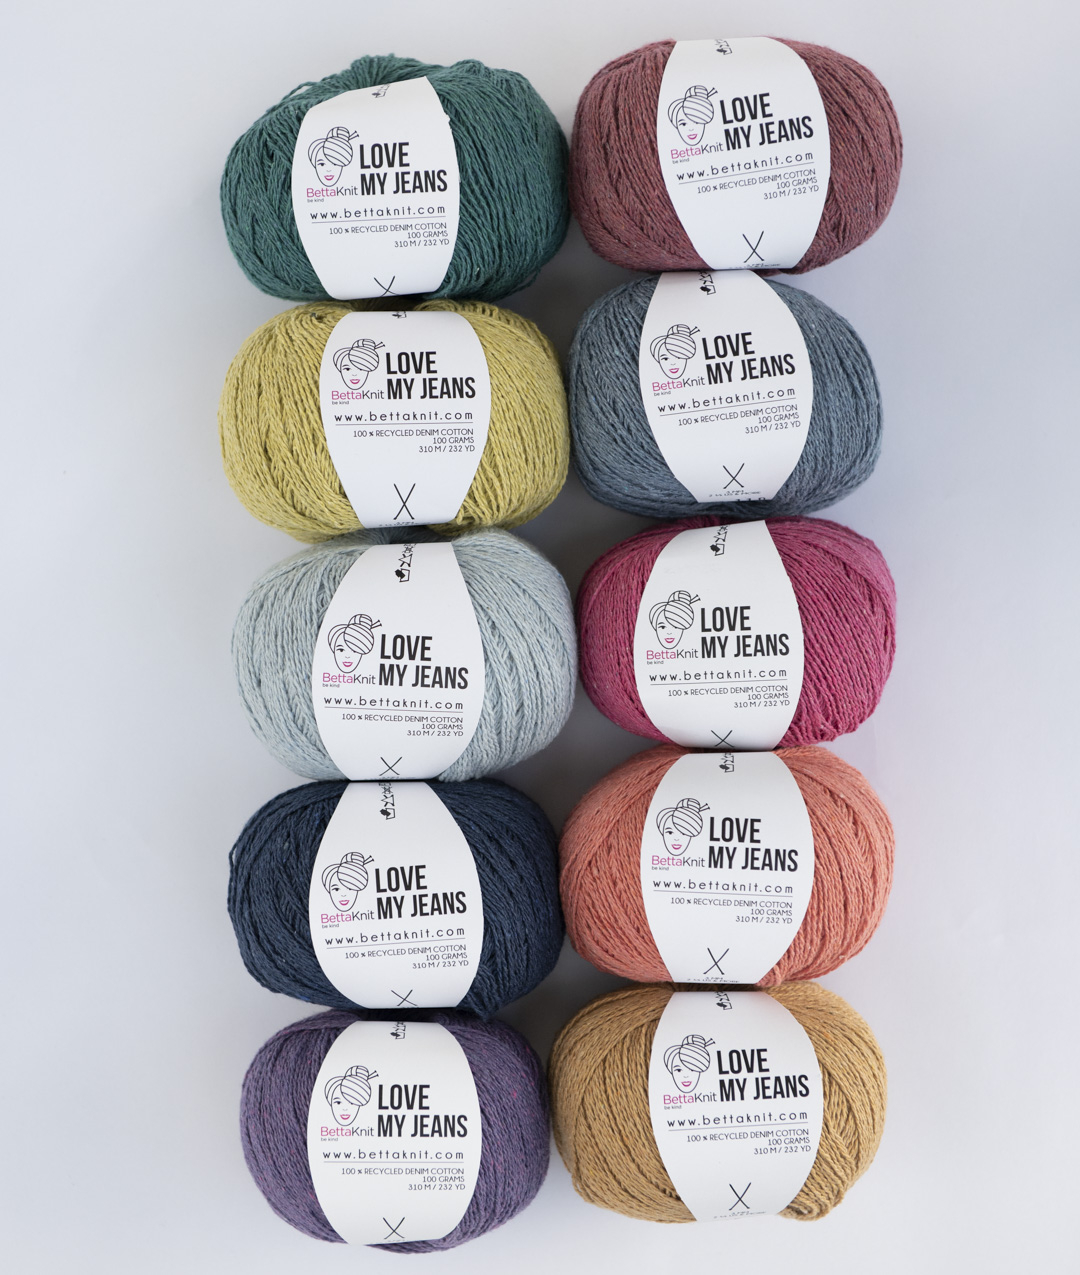 Packs of Skeins -  - Love My Jeans - 10 balls - 1